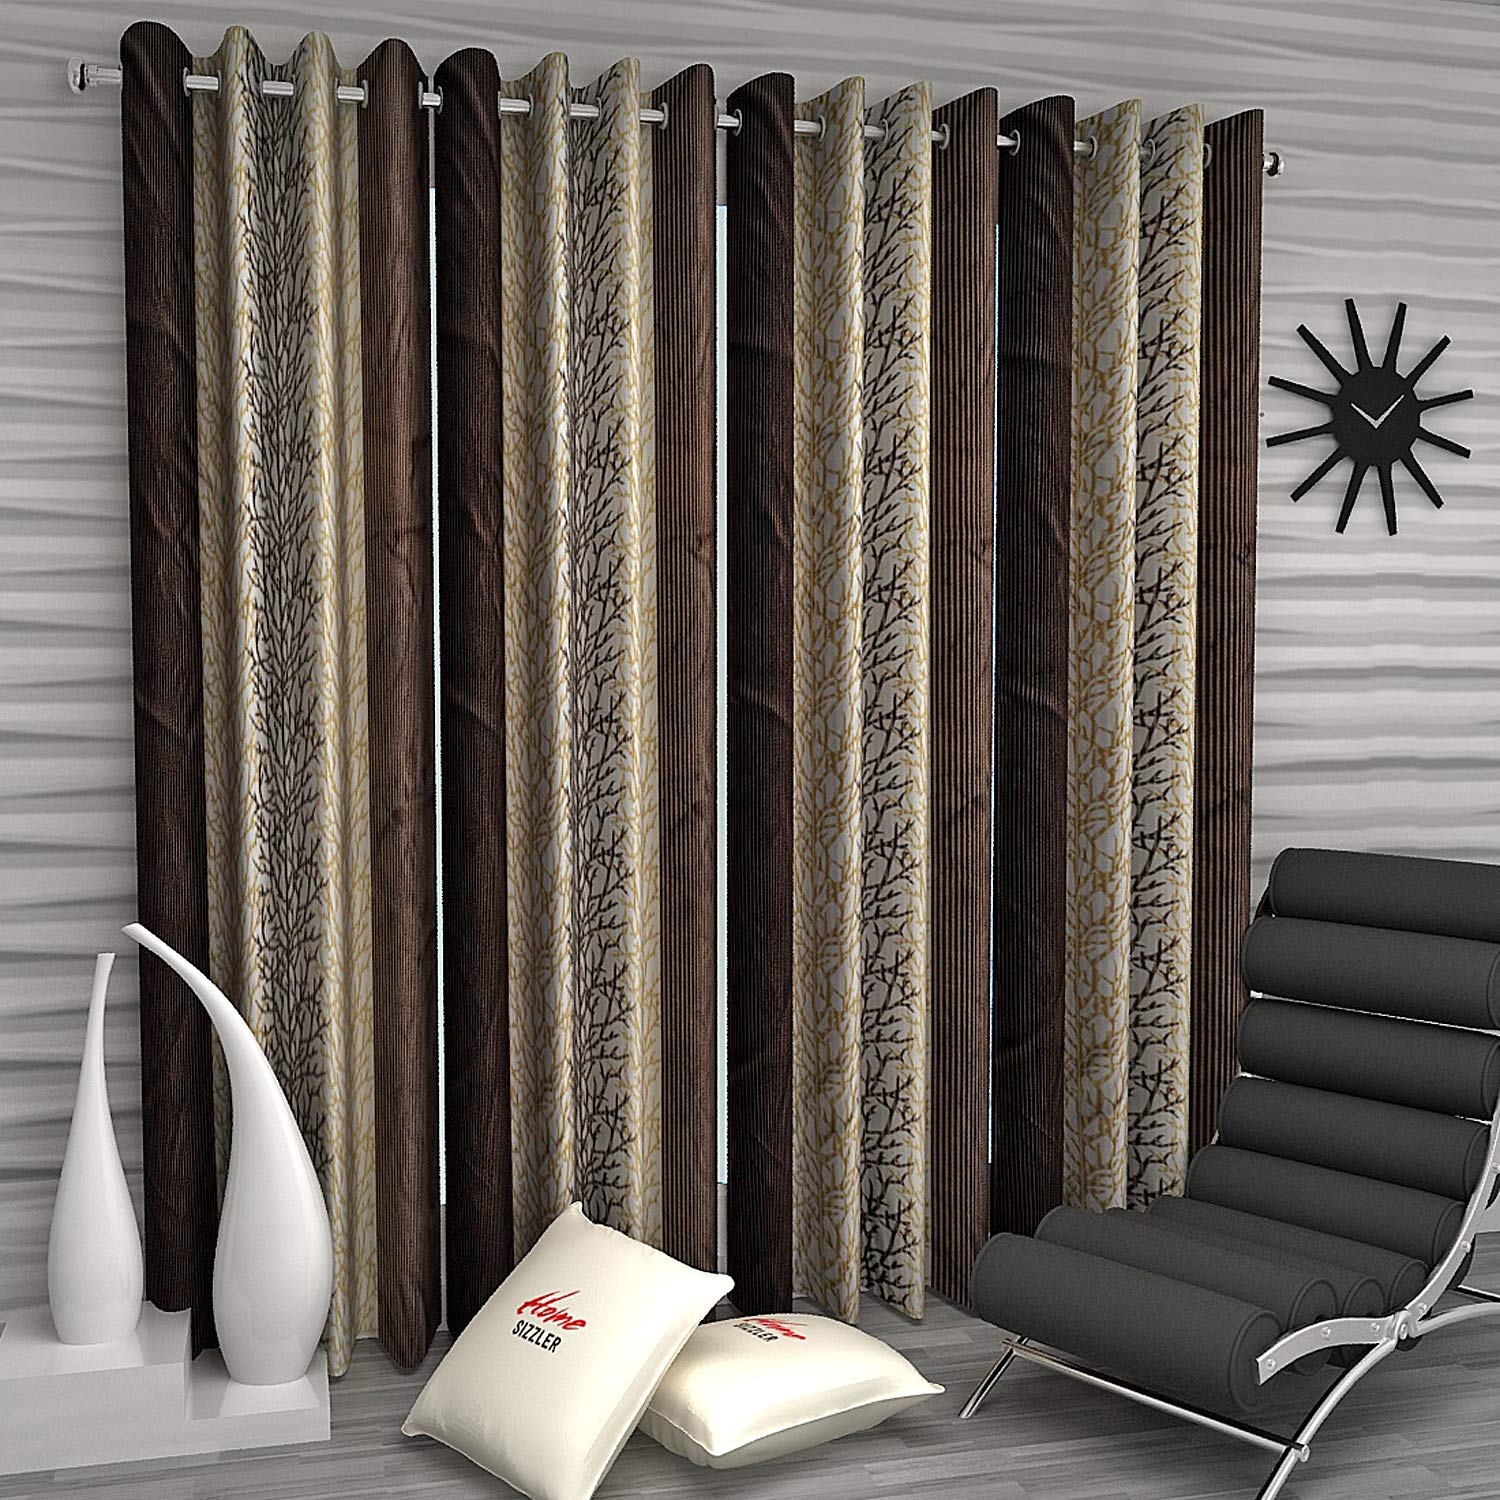 Home Sizzler 4 Piece Eyelet Polyester Door Curtain Set - 8 ft, Brown